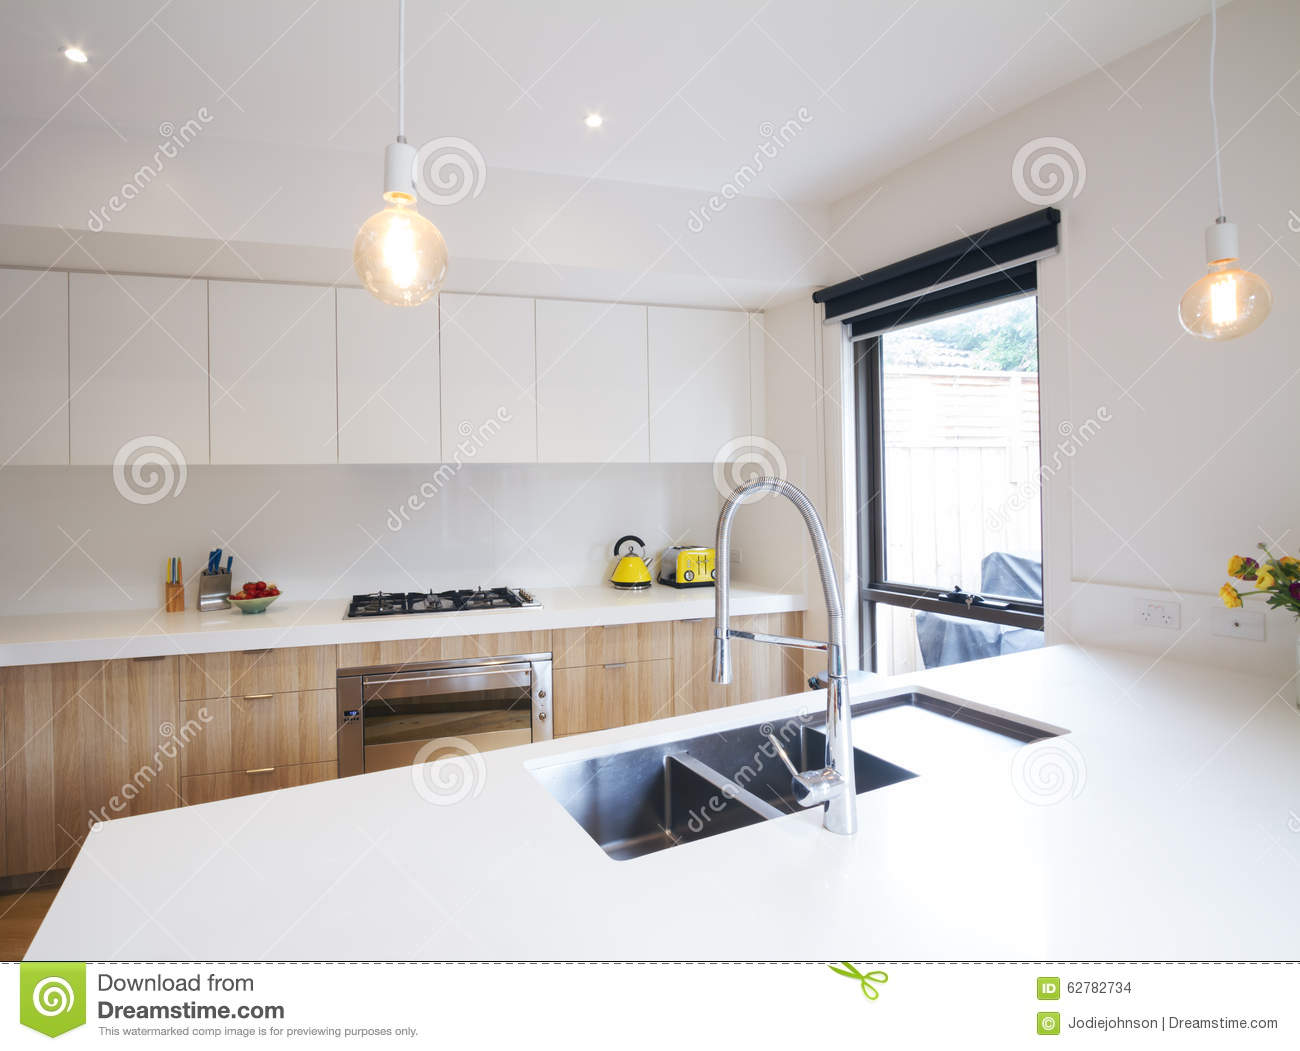 Modern Kitchen With Pendant Lighting And Sunken Sink Stock Photo Image Of Appliance Bench 62782734